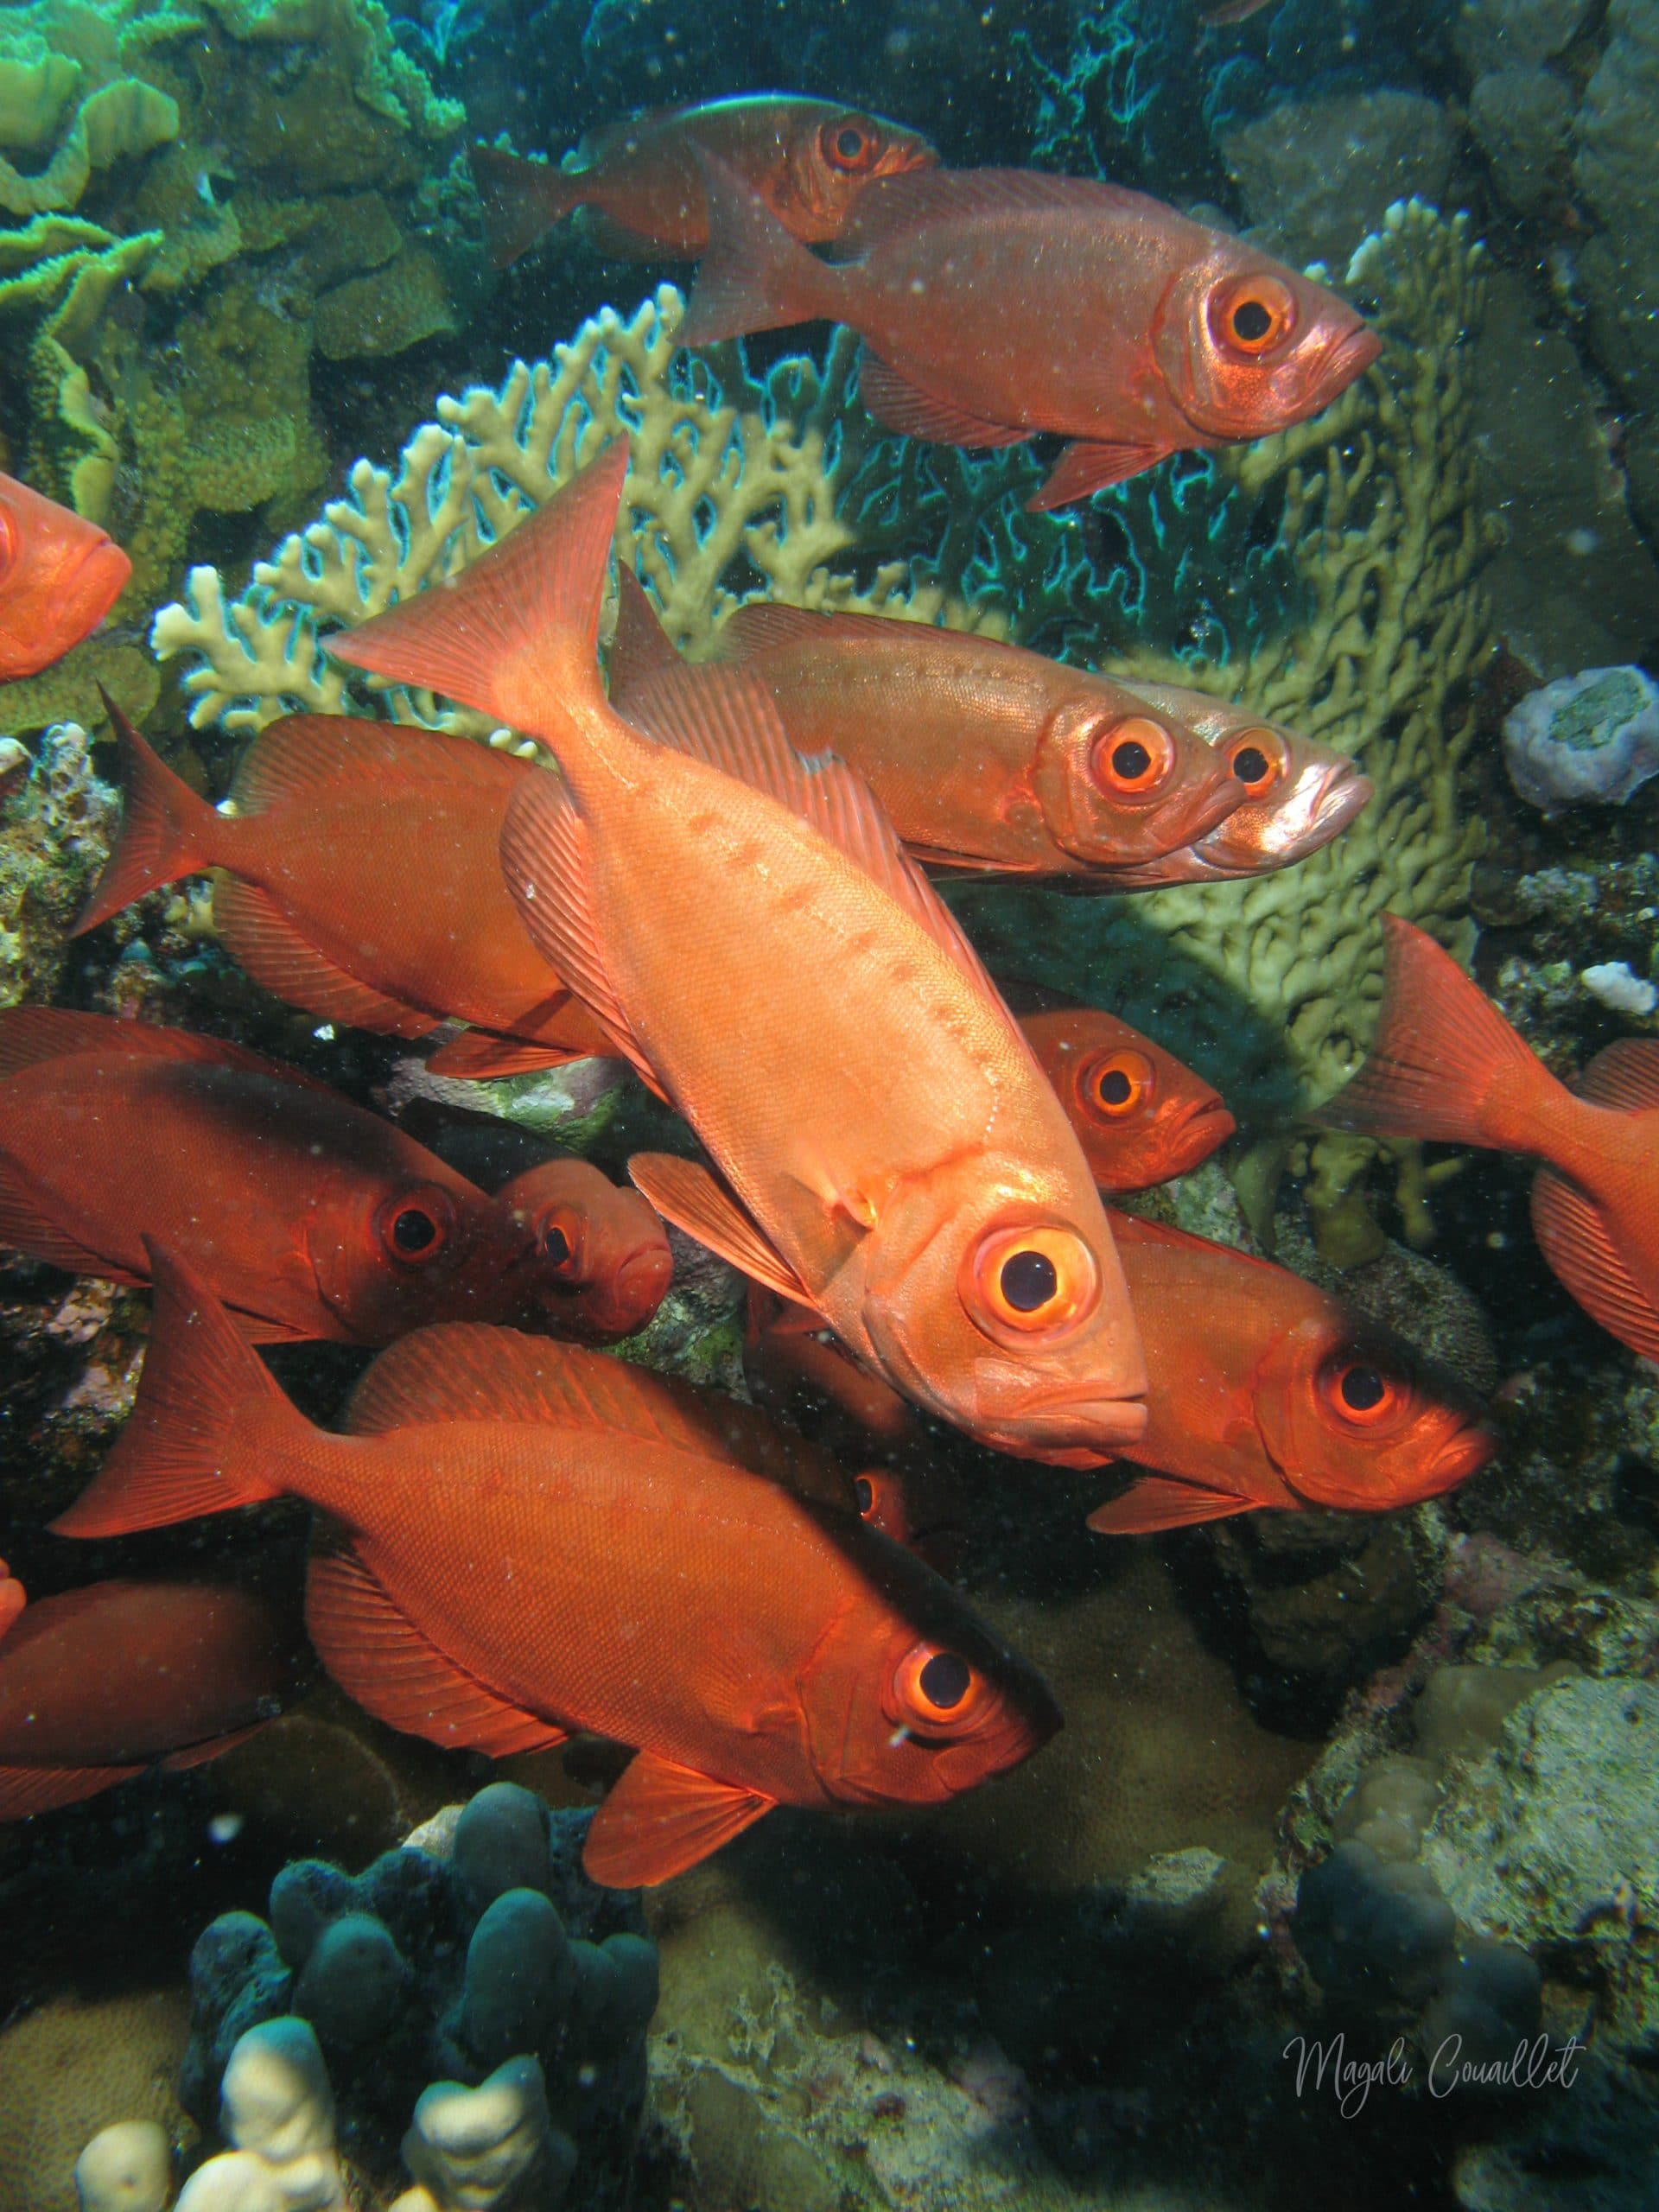 Poissons-soldats - Soldierfish